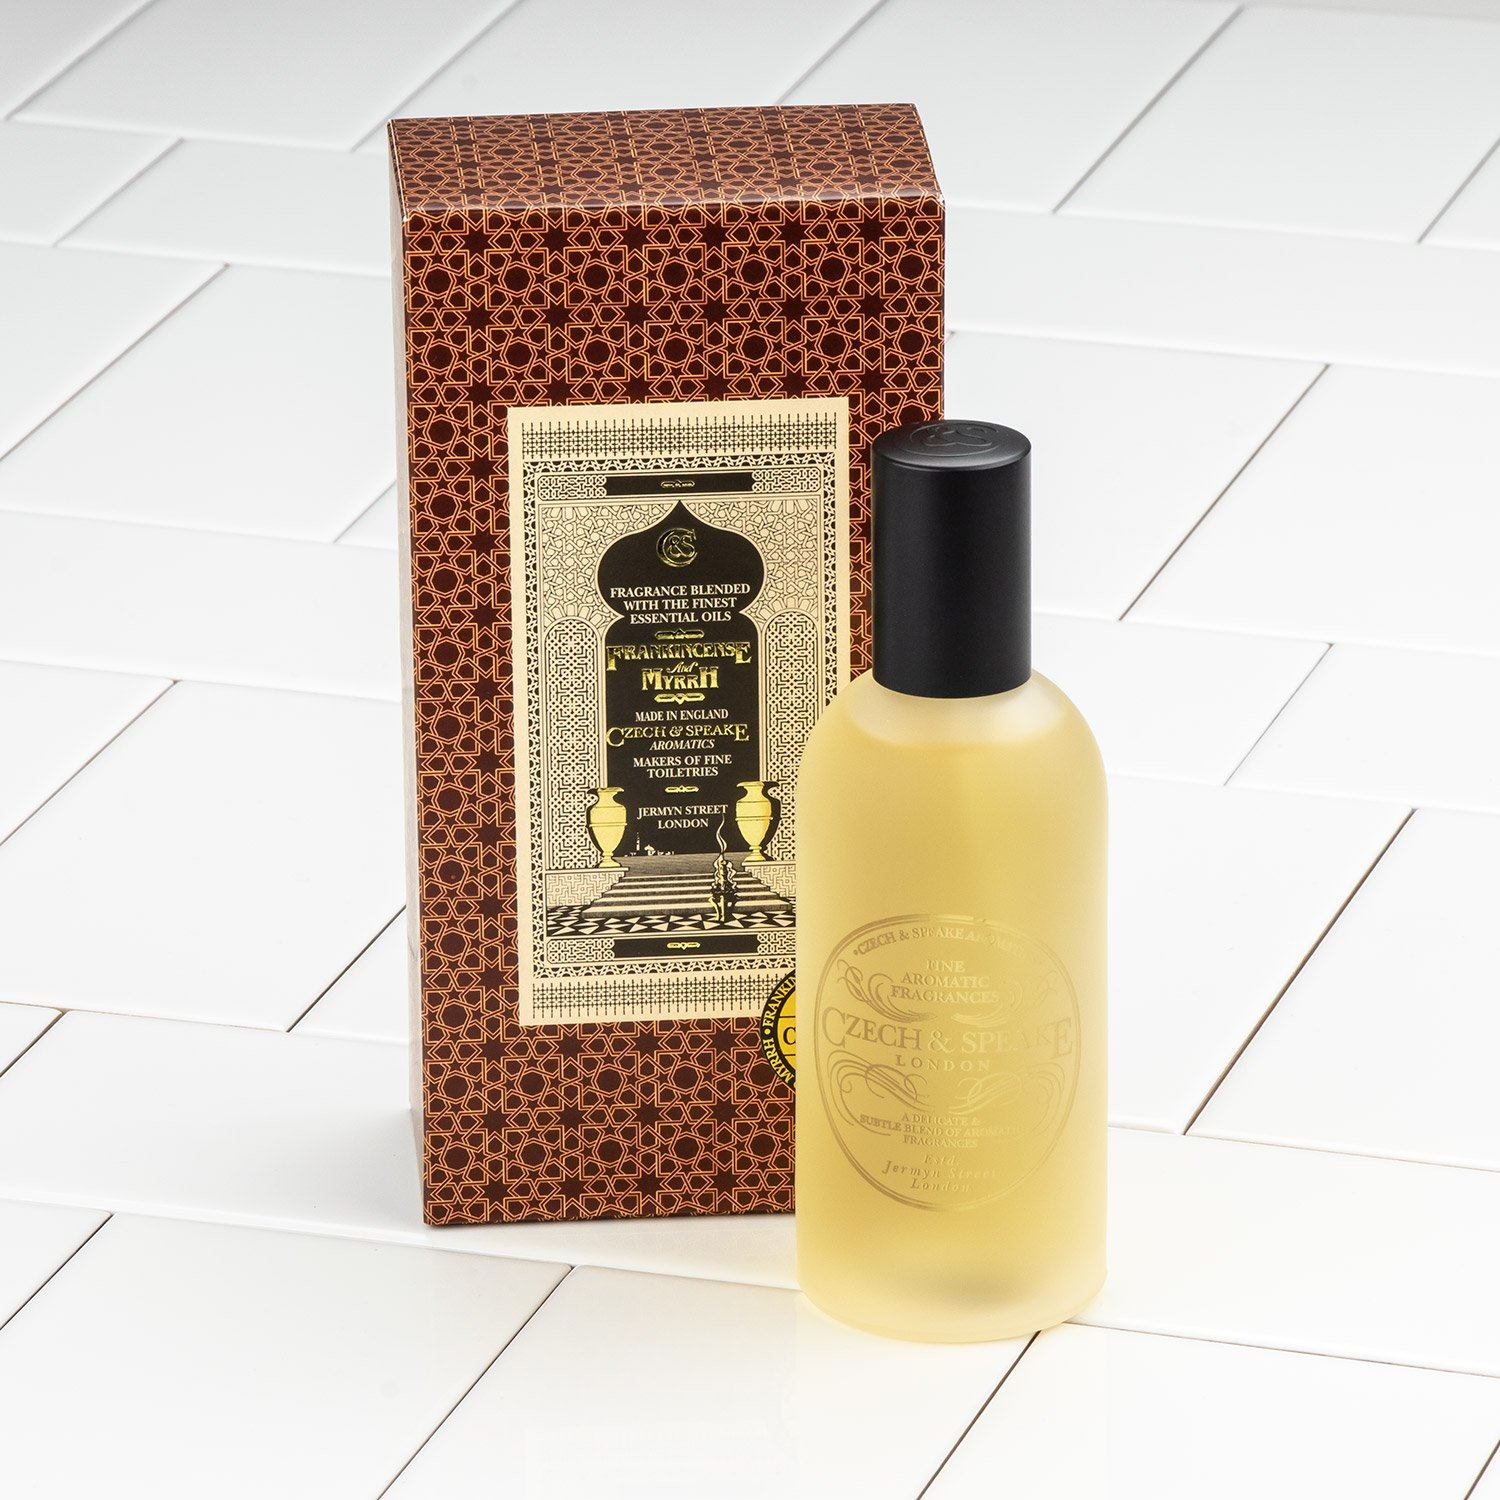 Czech & Speake Frankincense and Myrrh Cologne